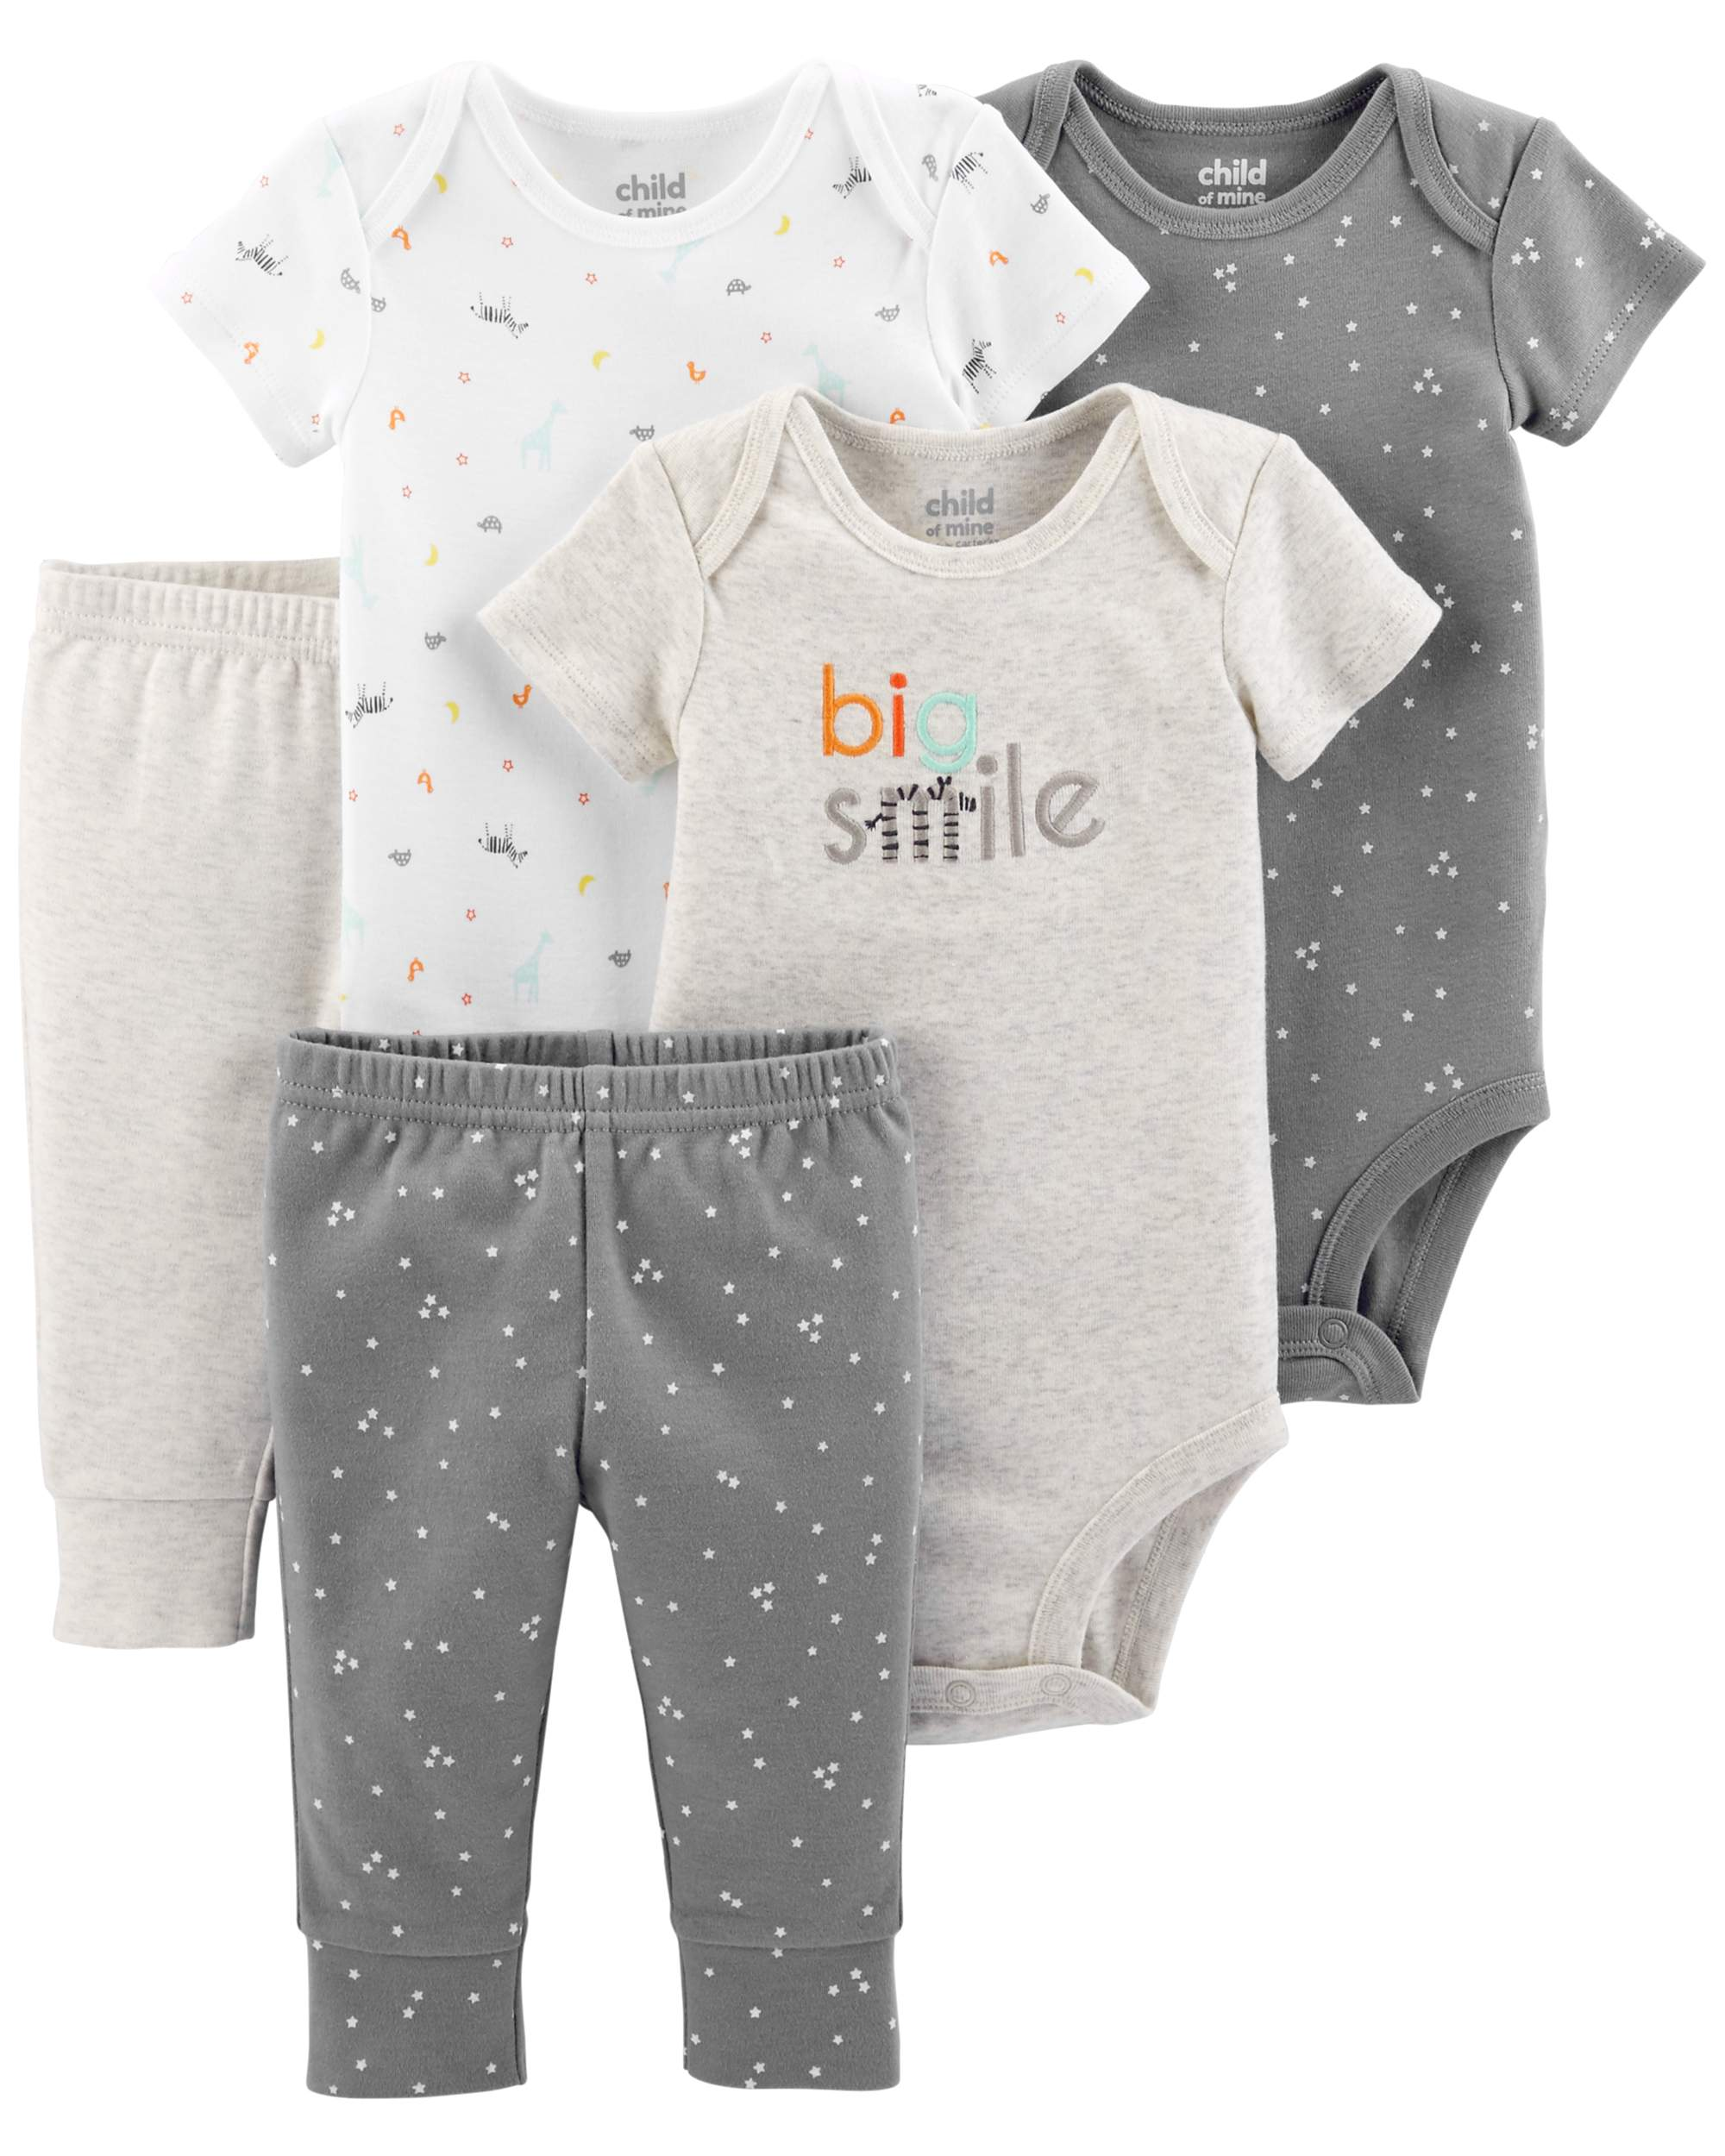 Short Sleeve Bodysuits & Pants, 5pc Set (Baby Boys or Baby Girls Unisex)